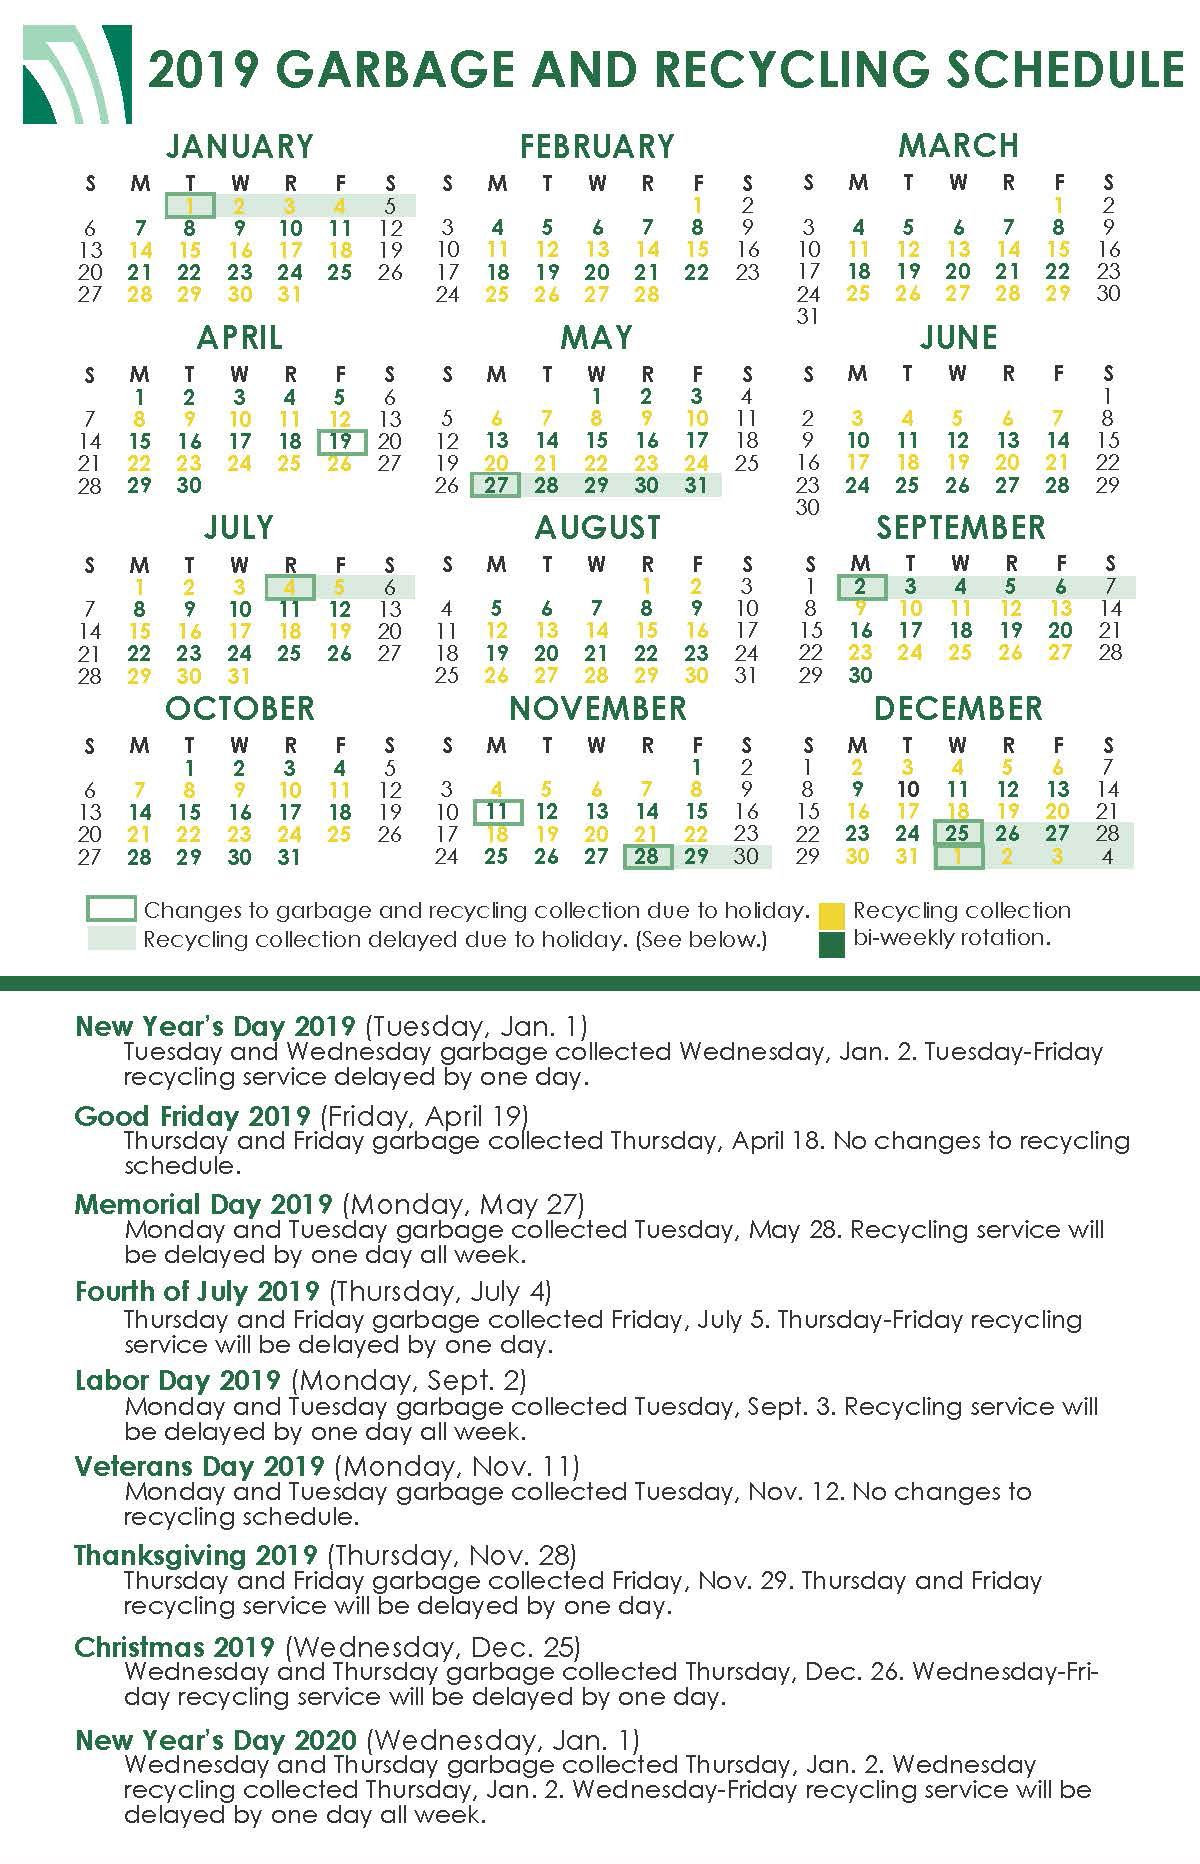 2019 Holiday Garbage and Recycling Schedule Chart